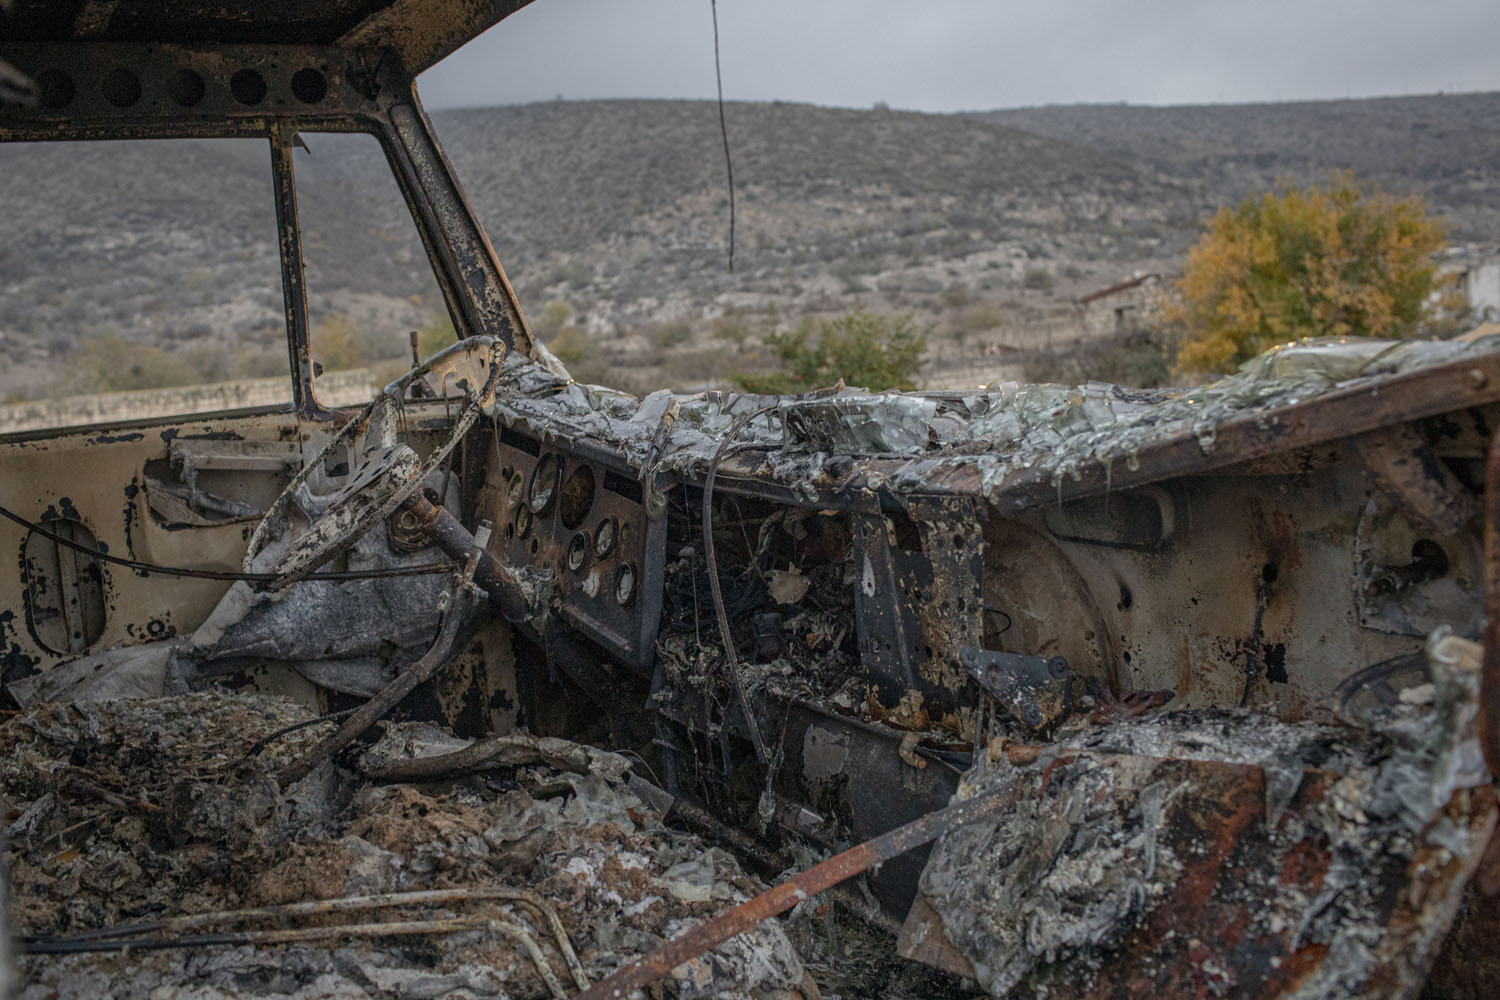 Two days after the war in Nagorno-Karabakh ended, I was driving to Martakert with a friend and we came across this truck hit during the fighting.